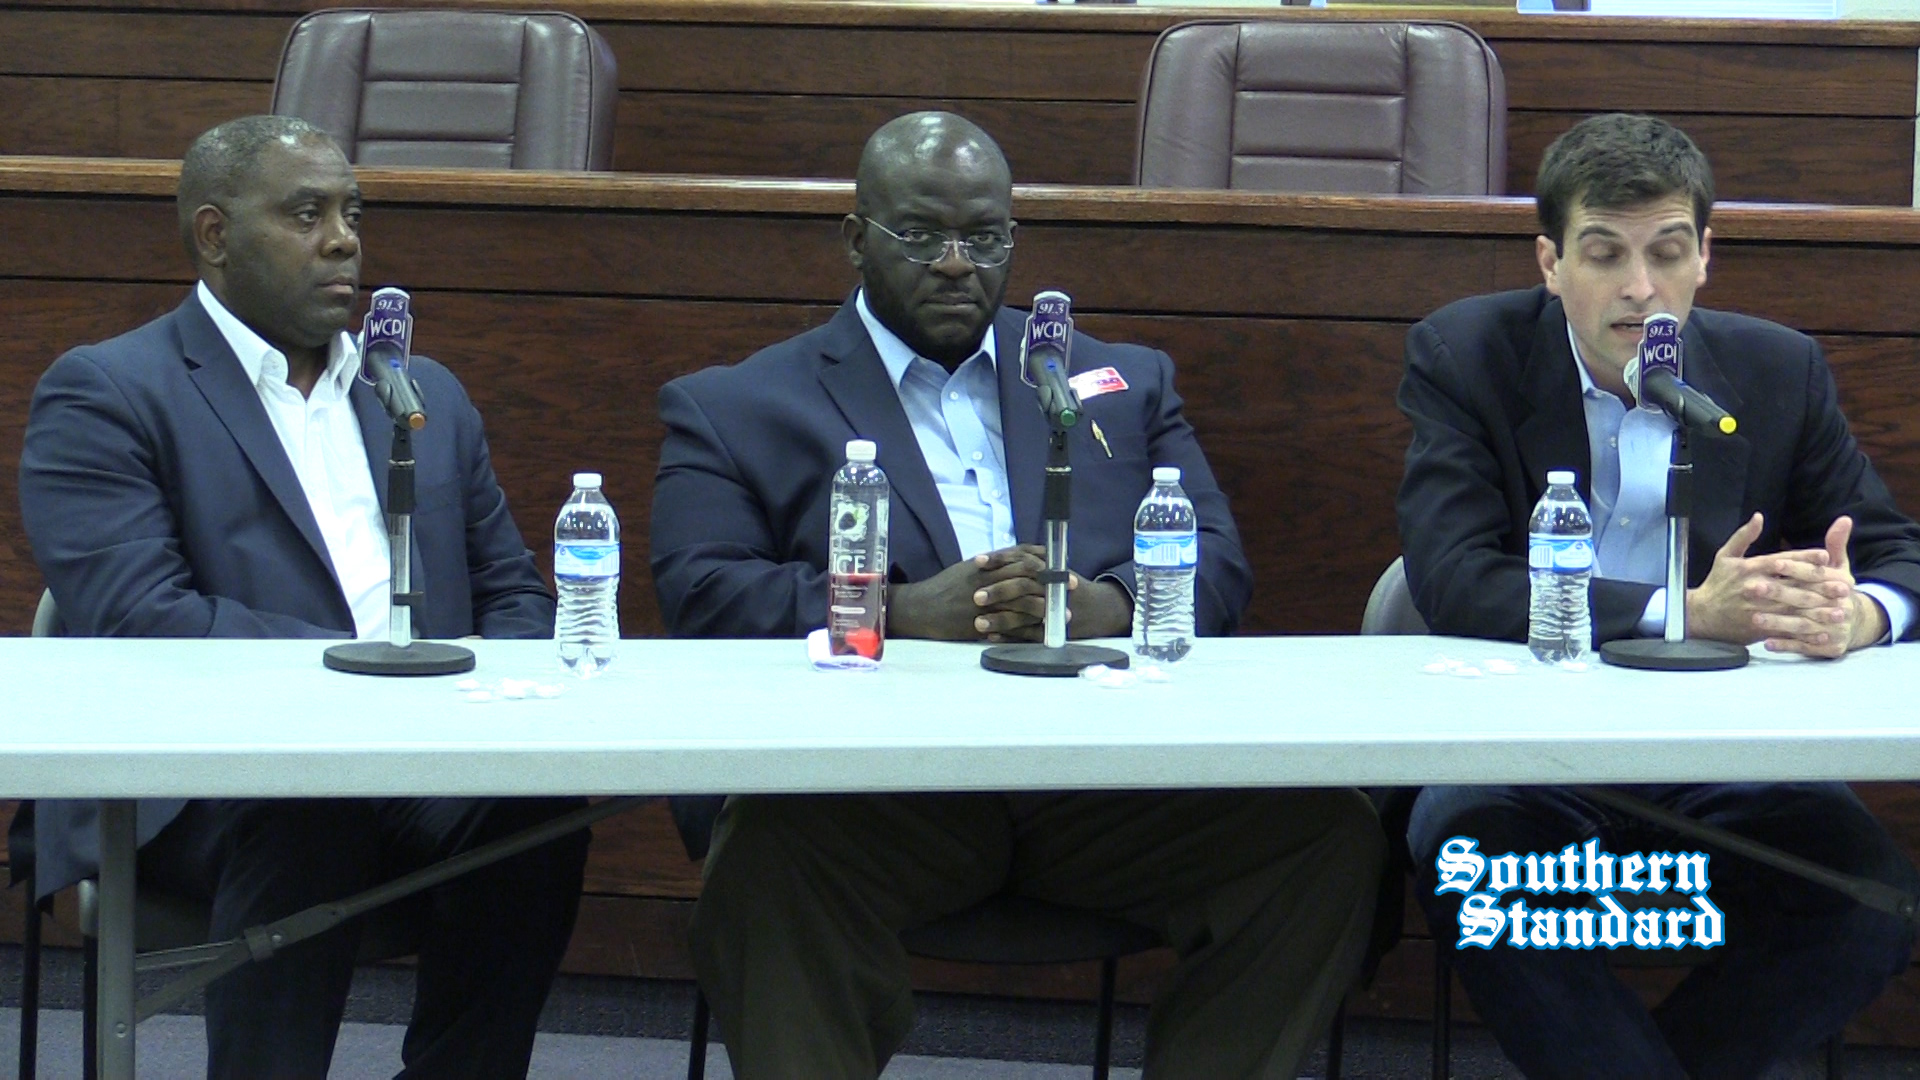 VIDEO: Congressional Candidate Forum